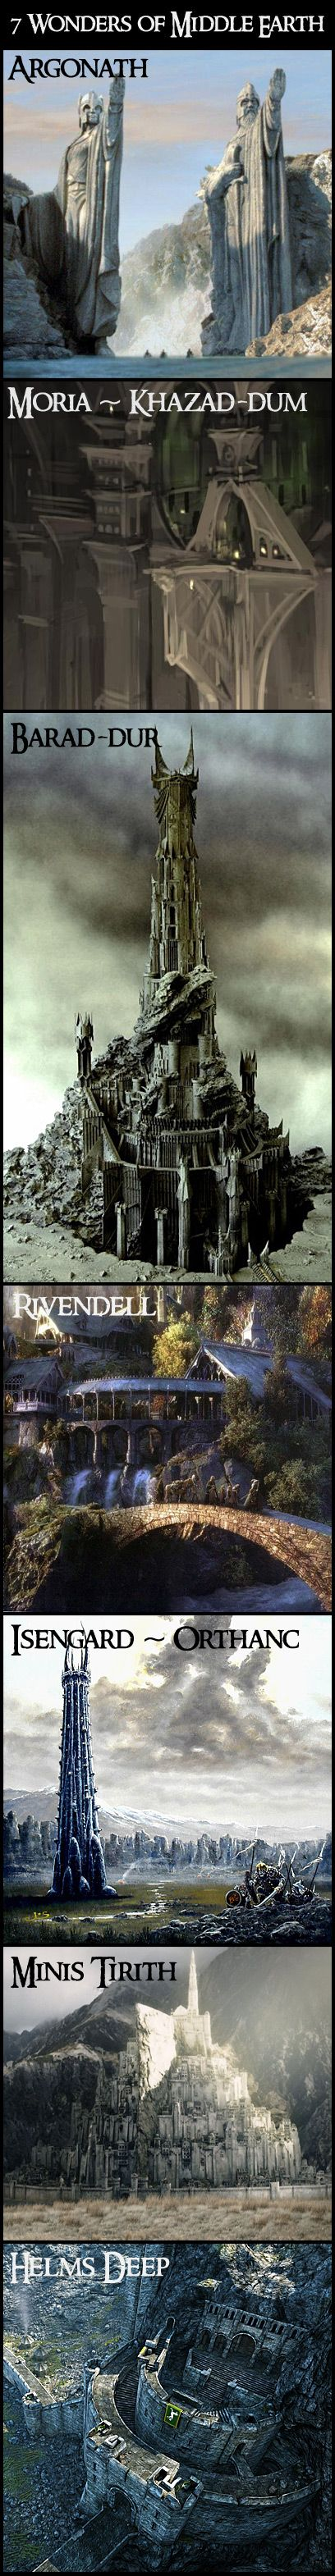 The 7 Wonders of Middle Earth - <3 <3 <3 this!